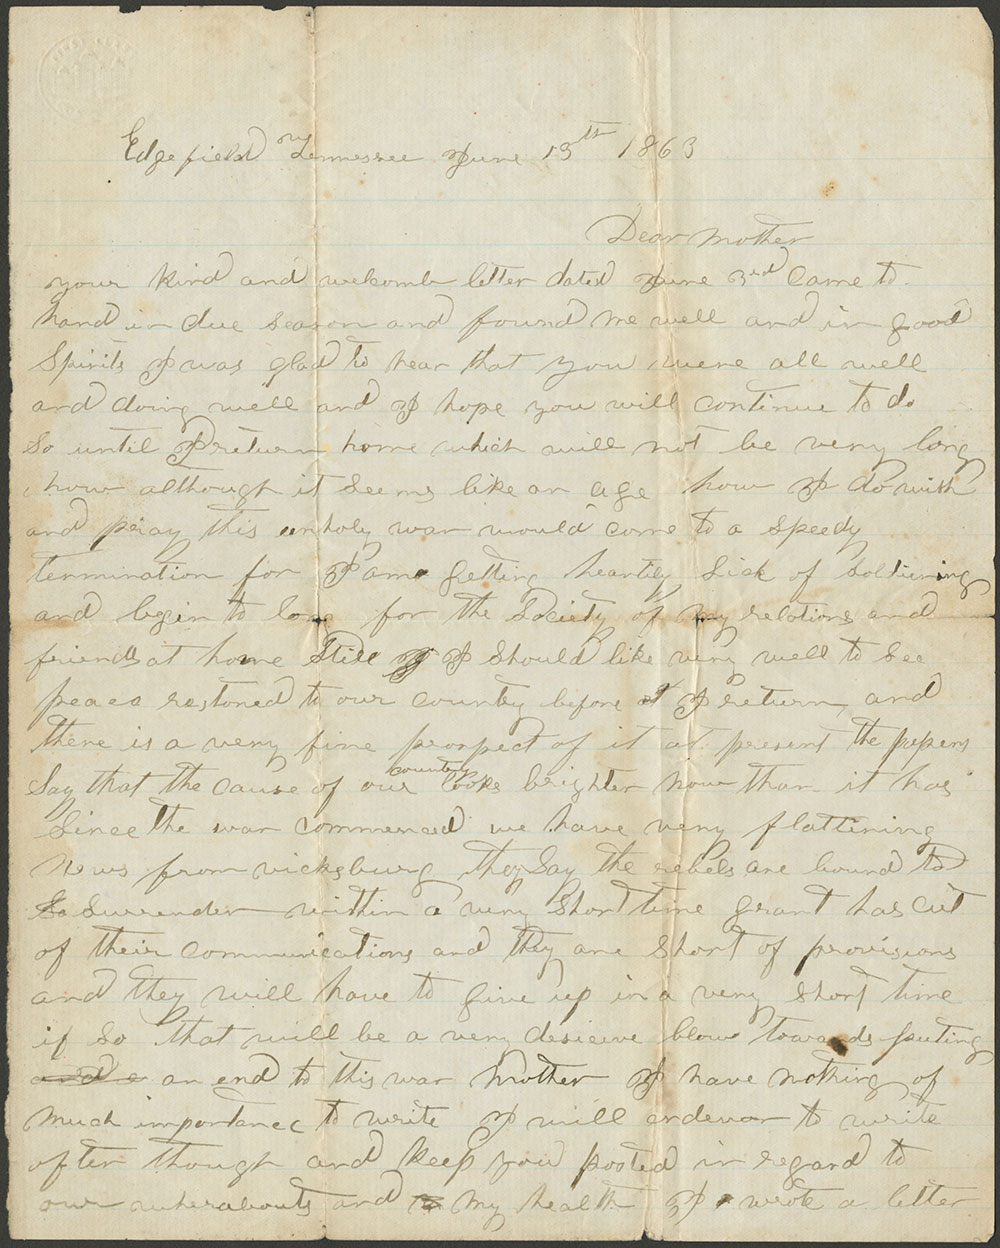 Don Carlos Salisbury to Katherine Smith Salisbury, 13 June, 1863